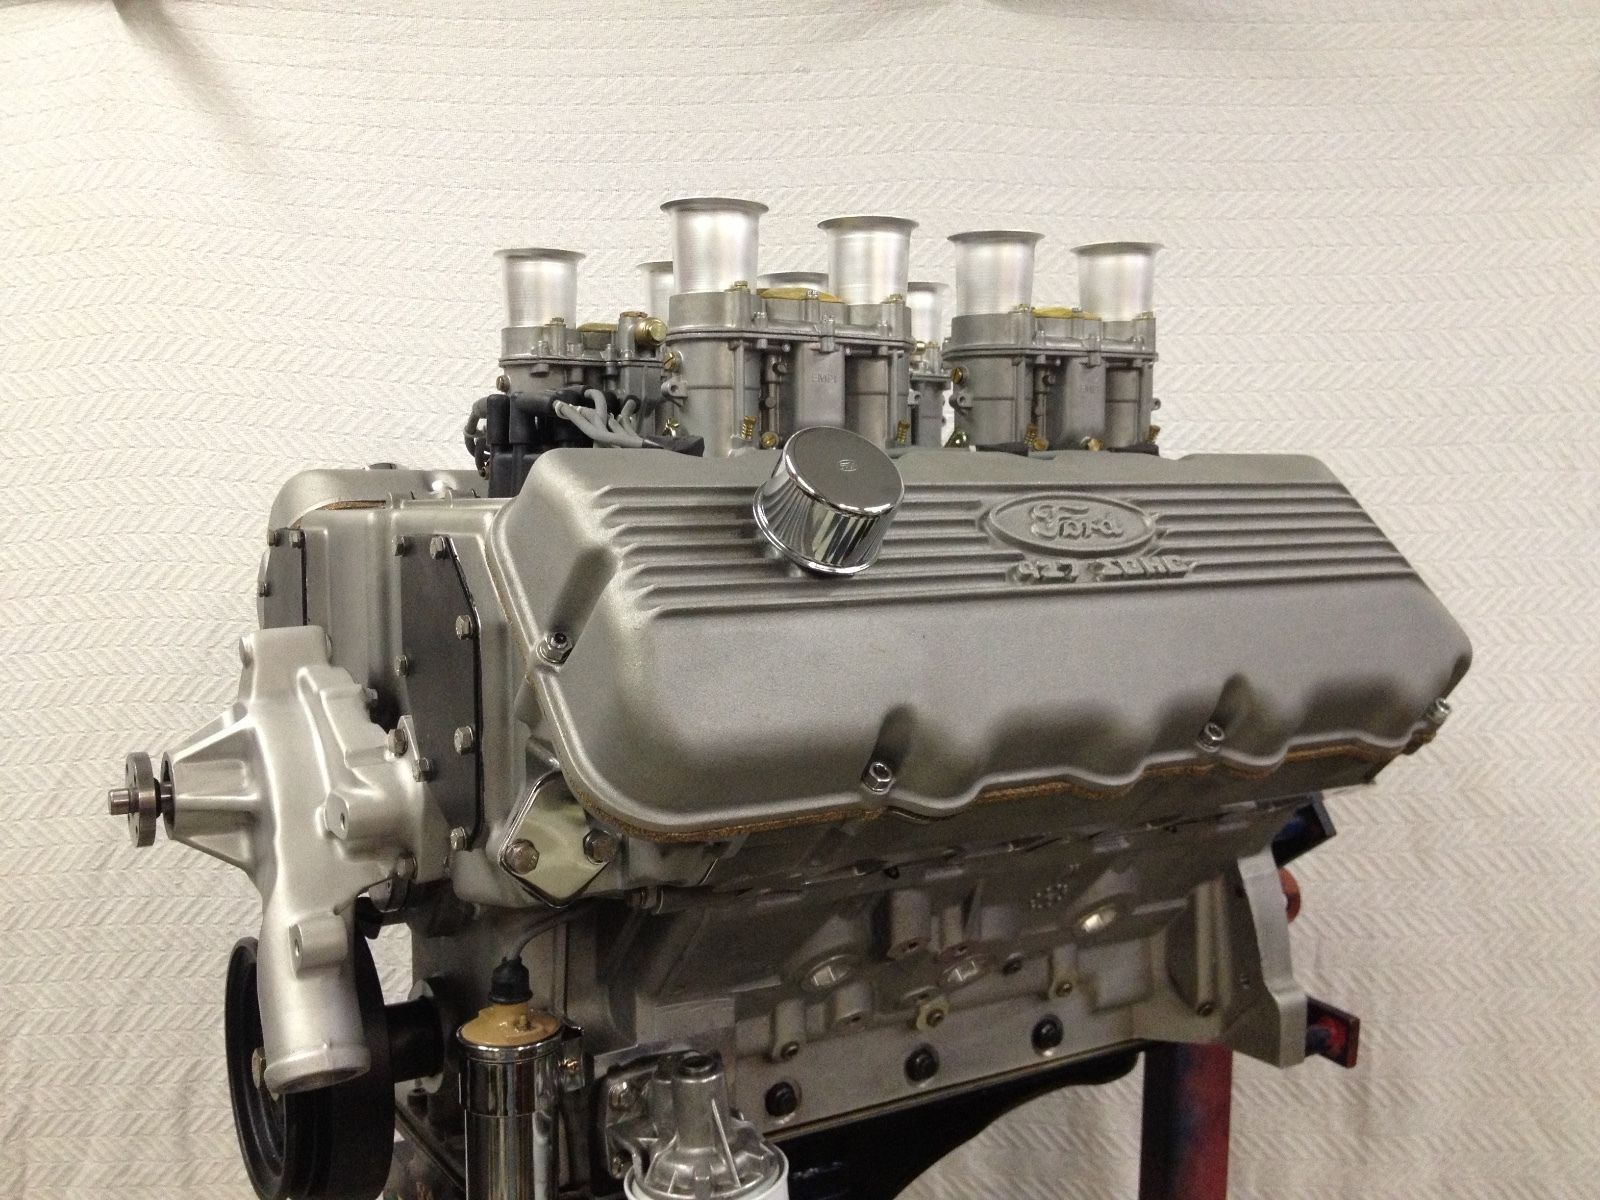 Details About 427 Sohc Ford Engine 504ci Aluminum Block Weber Intake Payment Plans Trades Engineering Ford Ford Racing